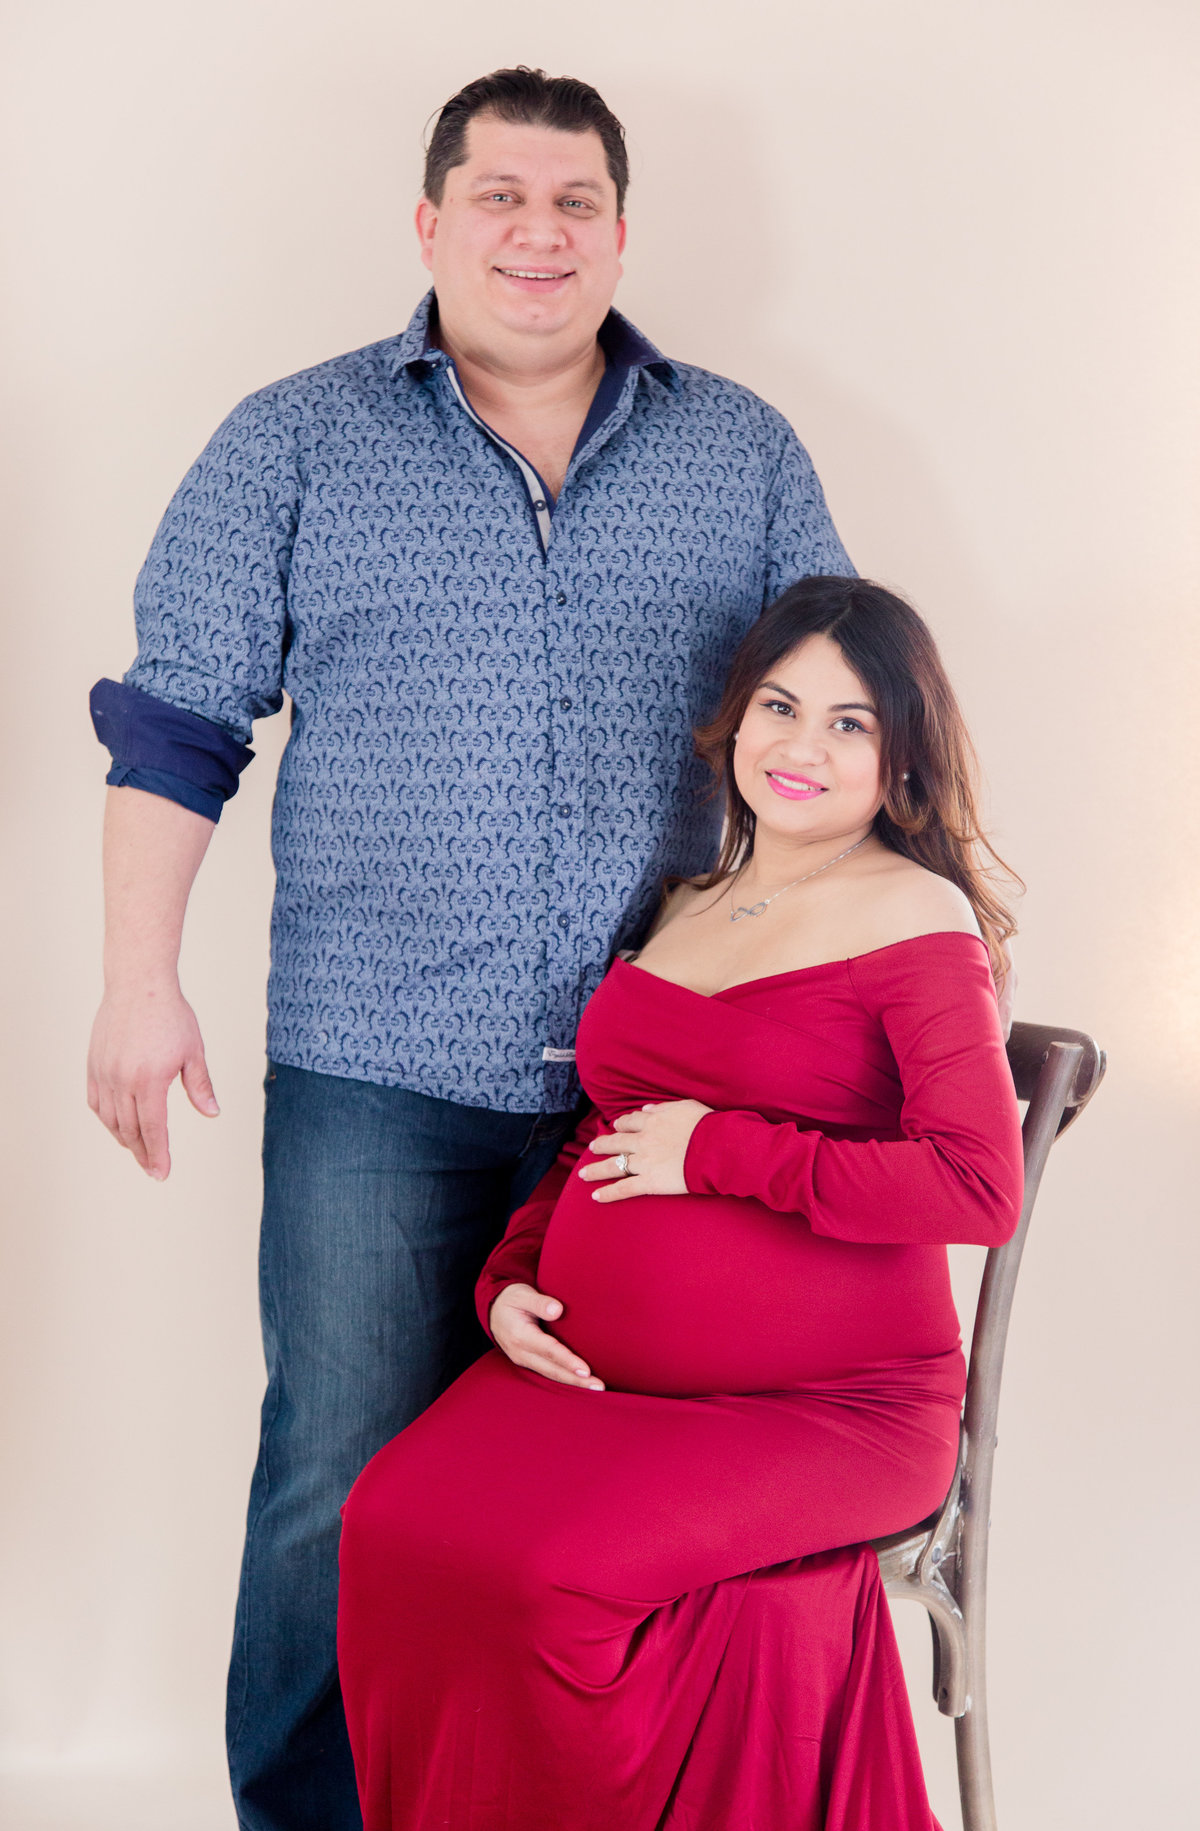 Scar-Vita-Photography-2018-Copyright-Maternity-Session-52